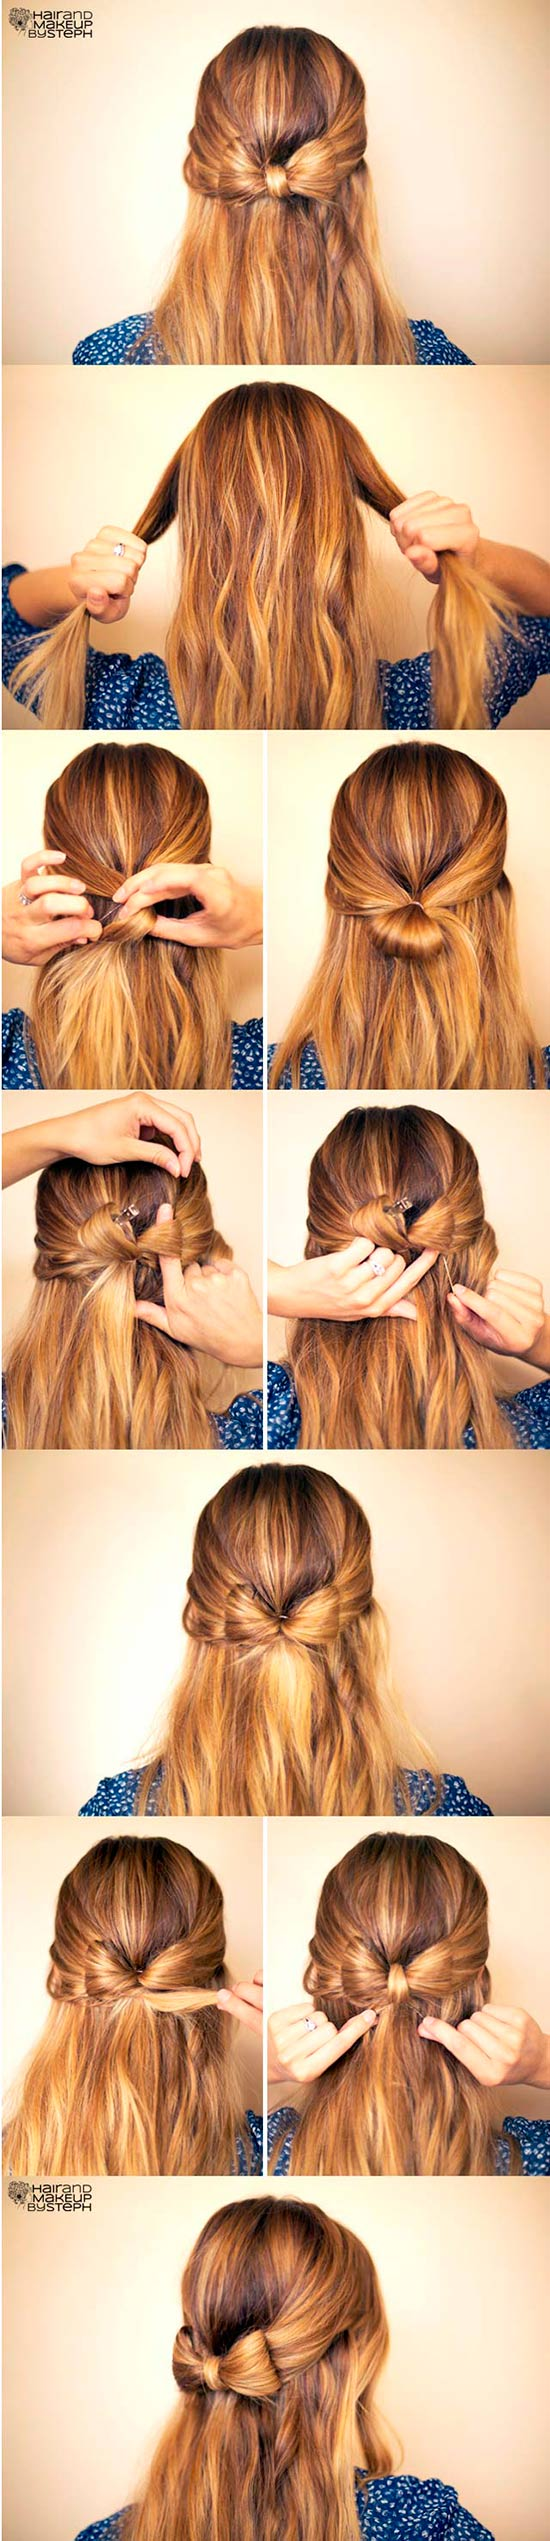 Easy Step-By-Step Hairstyle Tutorials for Chic, Girly Looks